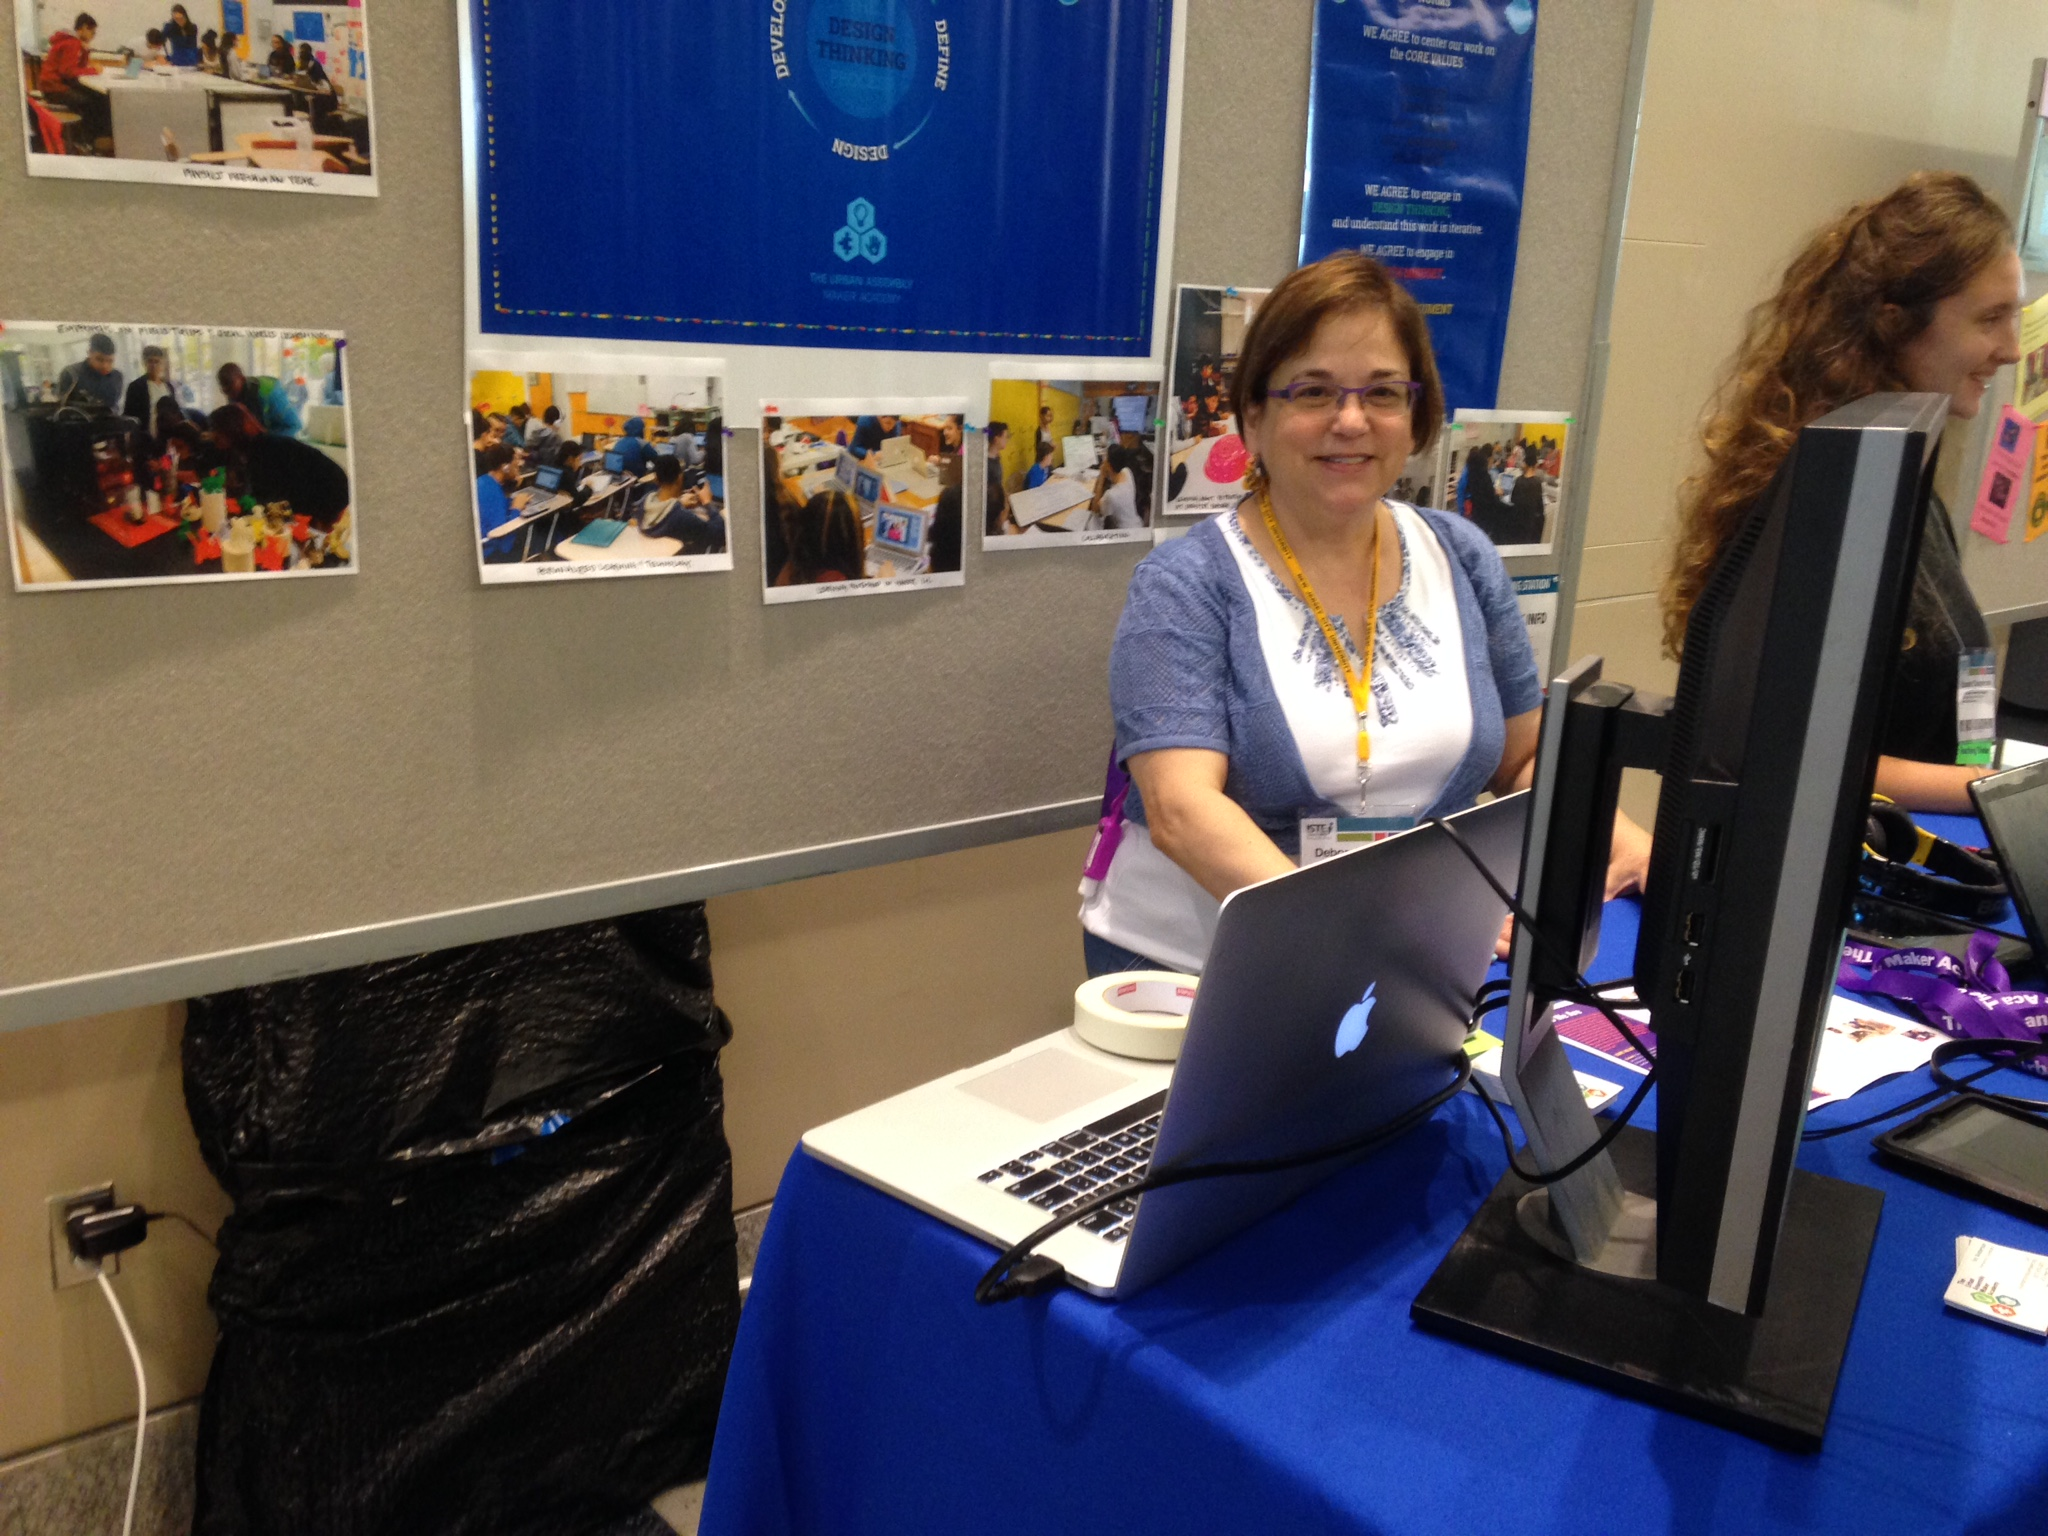 UA Maker ISTE 2015 Poster Session